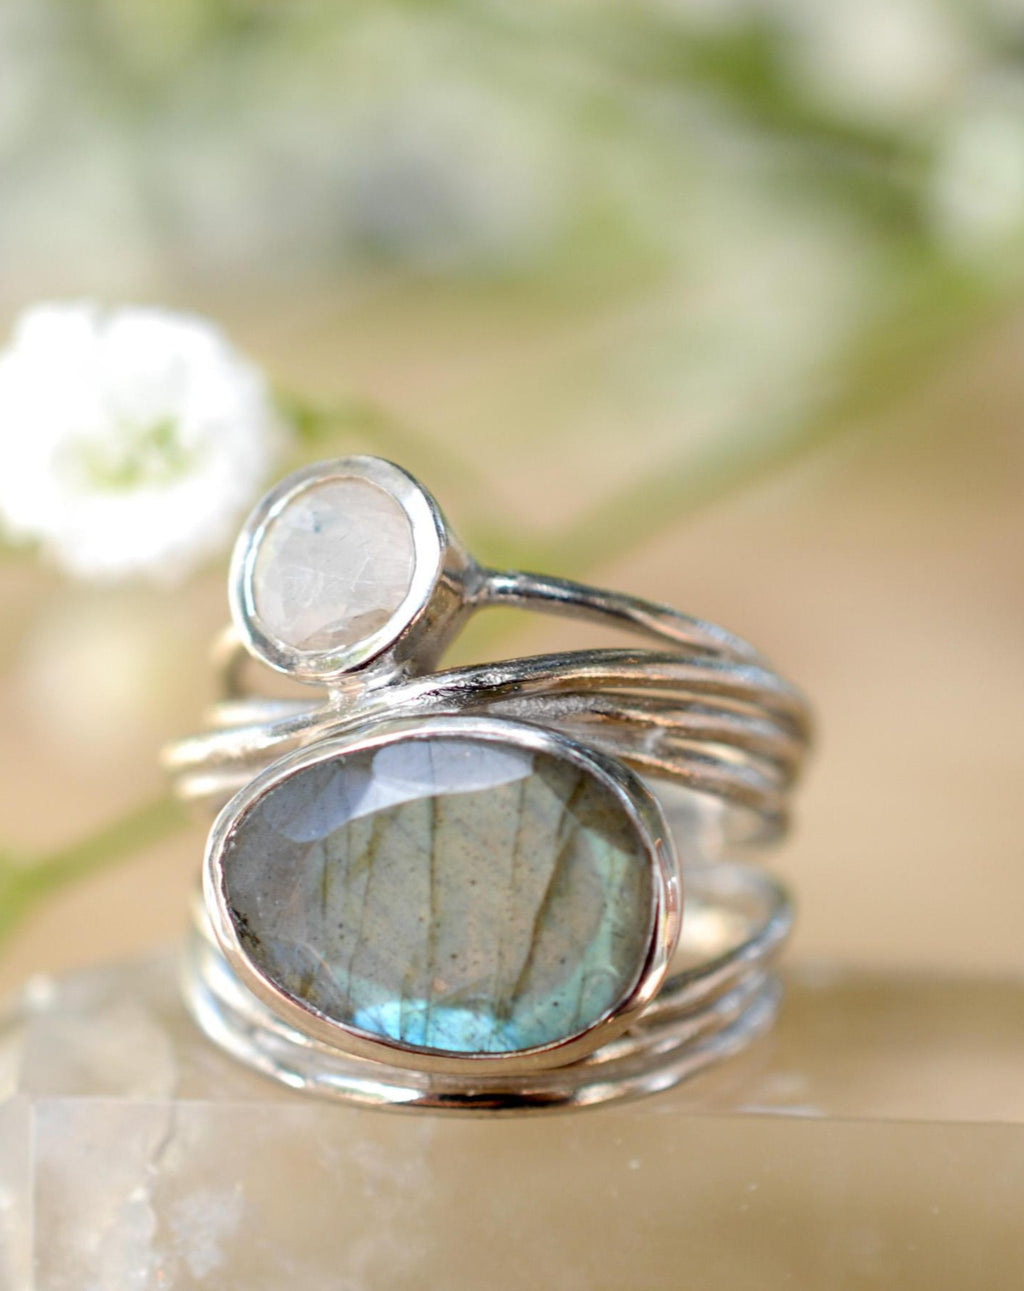 Silver Plated Ring * Labradorite * Moonstone * Gemstones * Handmade * Statement * Natural * Organic * Gift for her * Jewelry*Bycila*BJR074